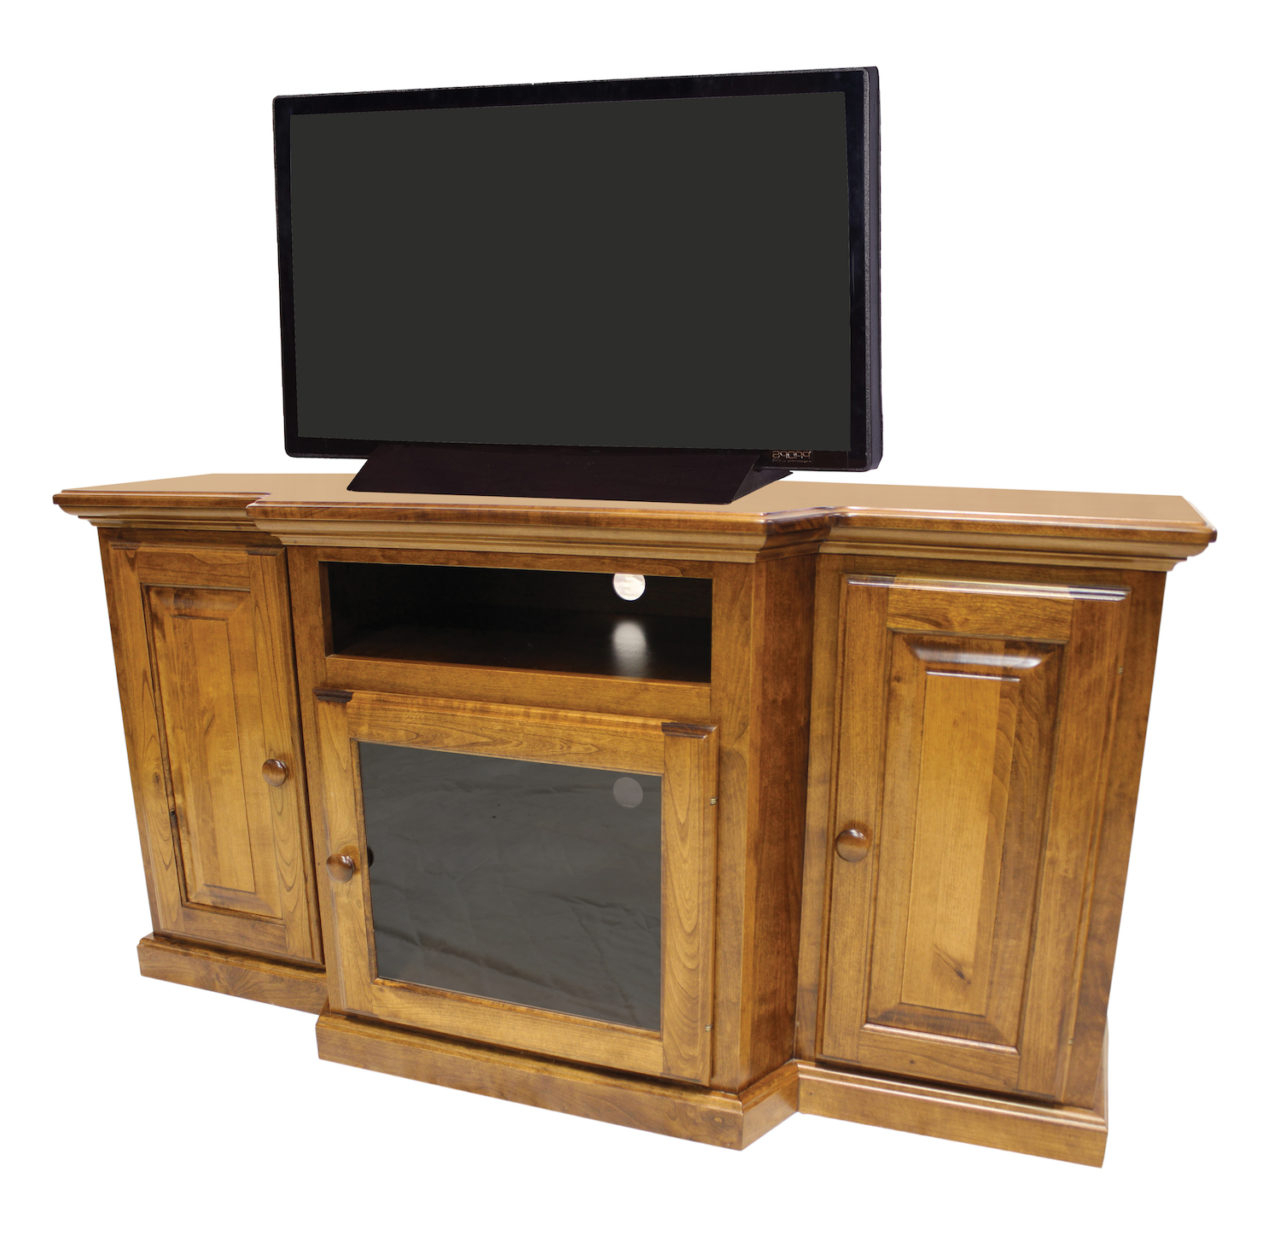 Famous 959 161 Kirtley Slimline Tv Stand Cp – Gish's Amish Legacies Inside Slim Line Tv Stands (View 6 of 20)